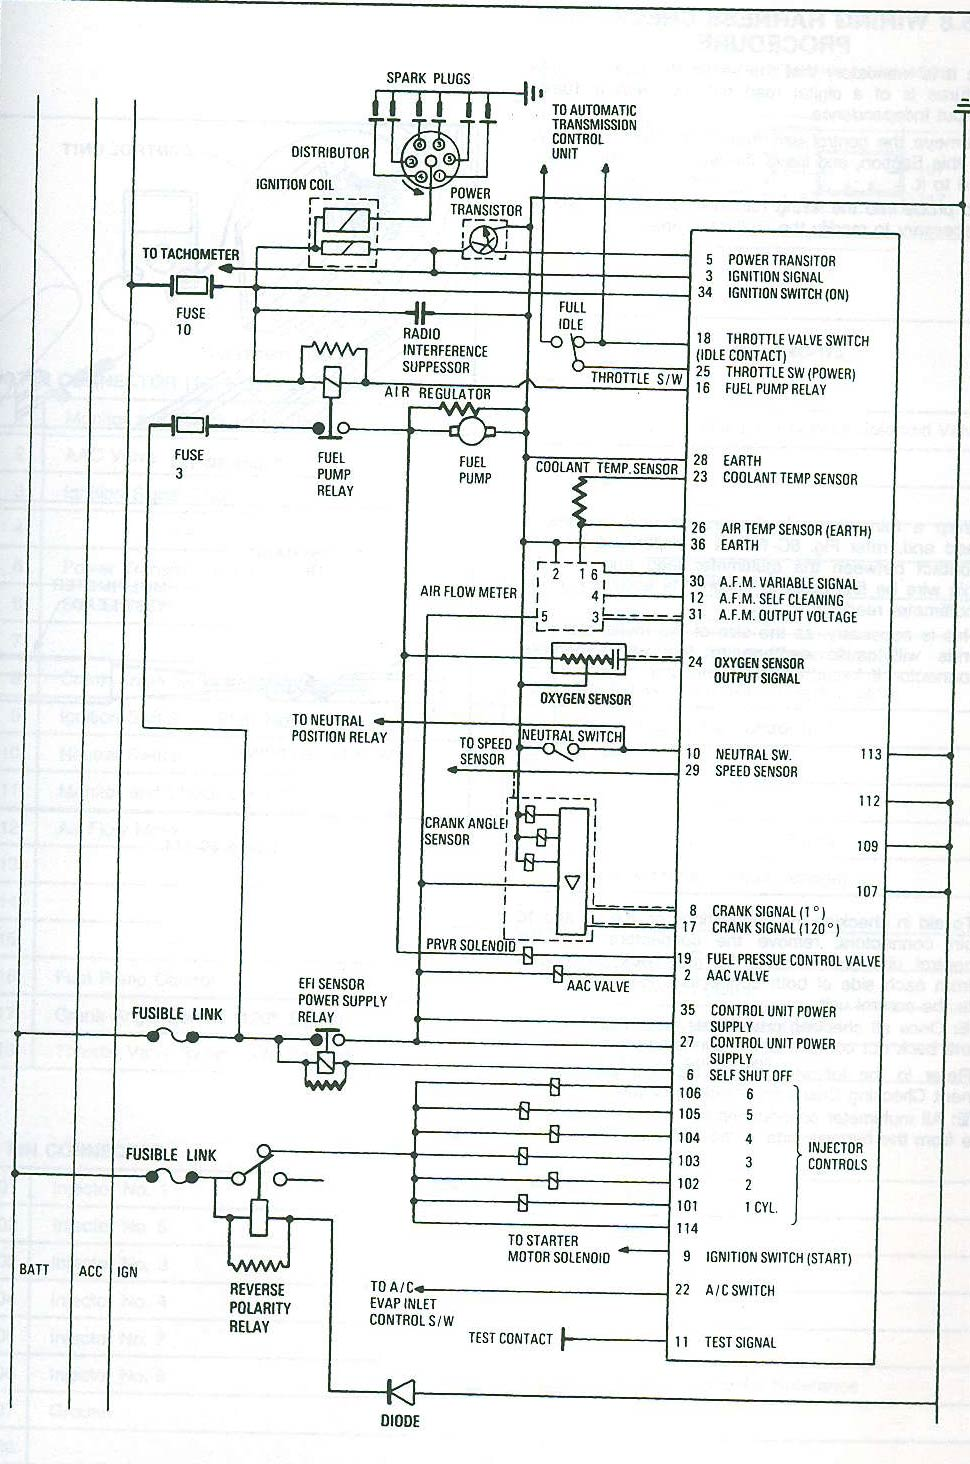 ecuwiring vl commodore dash wiring diagram efcaviation com vk commodore wiring diagram at gsmportal.co